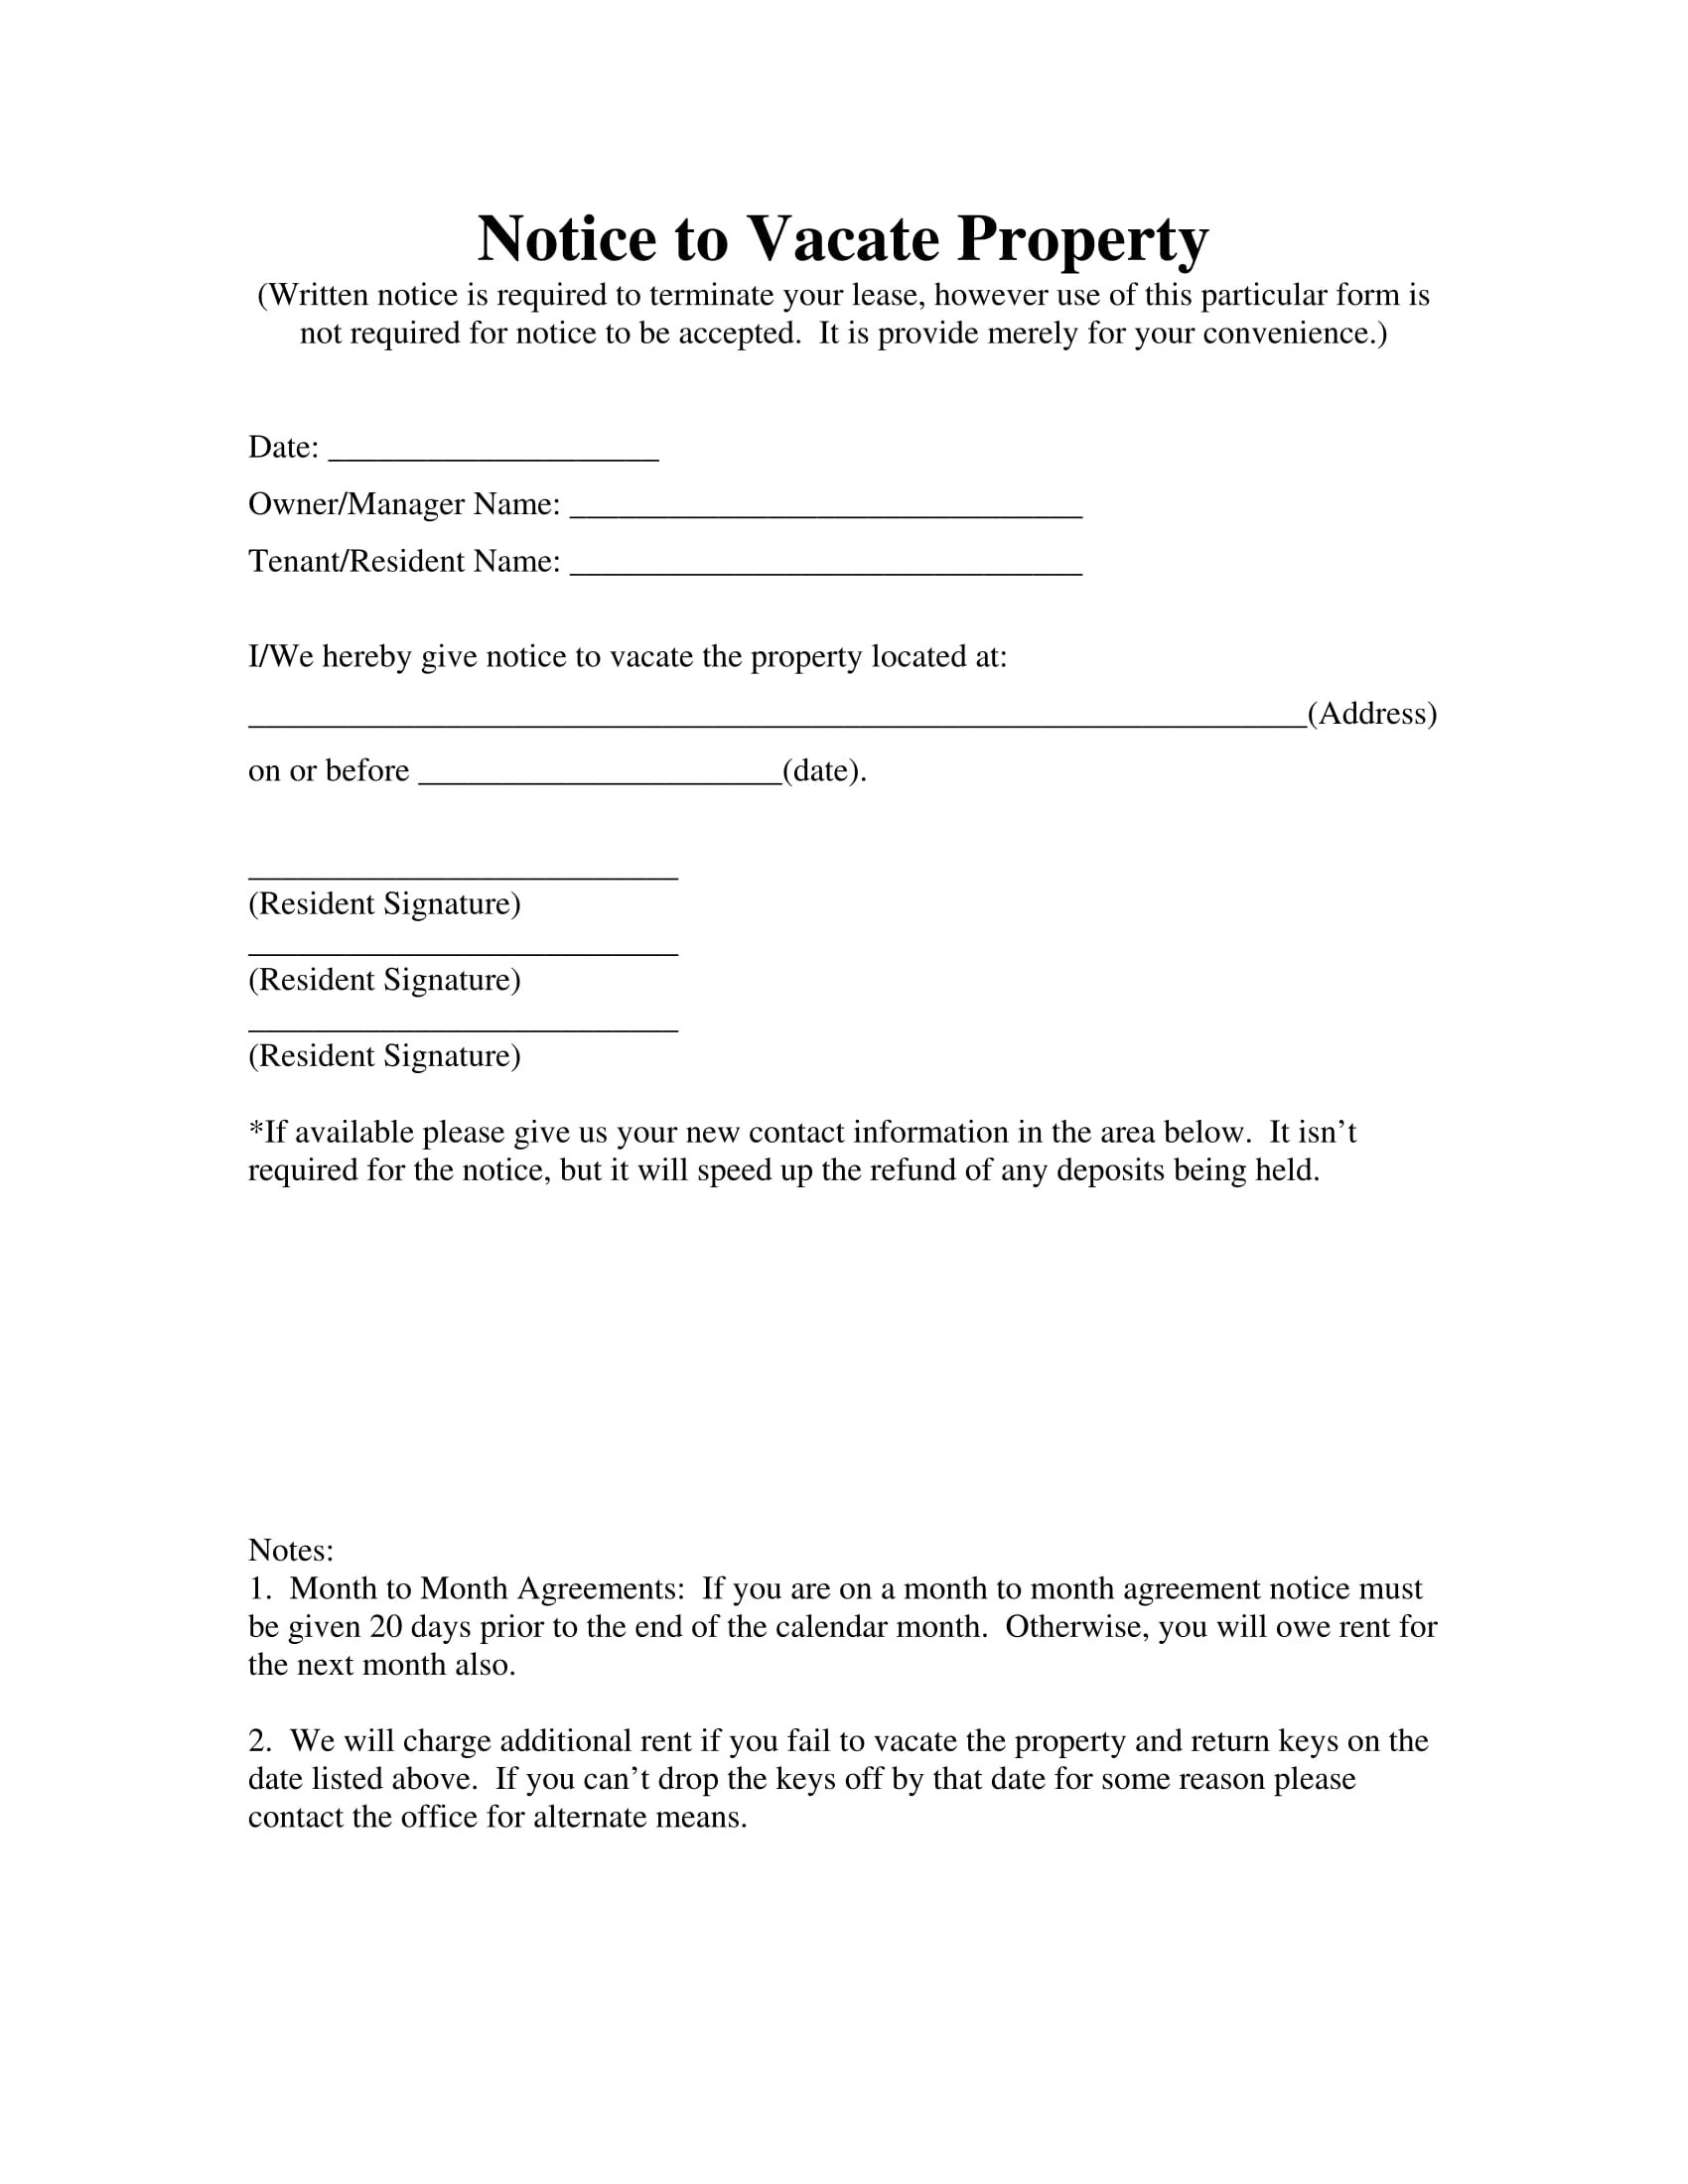 15 landlord forms landlord agreements notice forms for Giving notice to landlord template